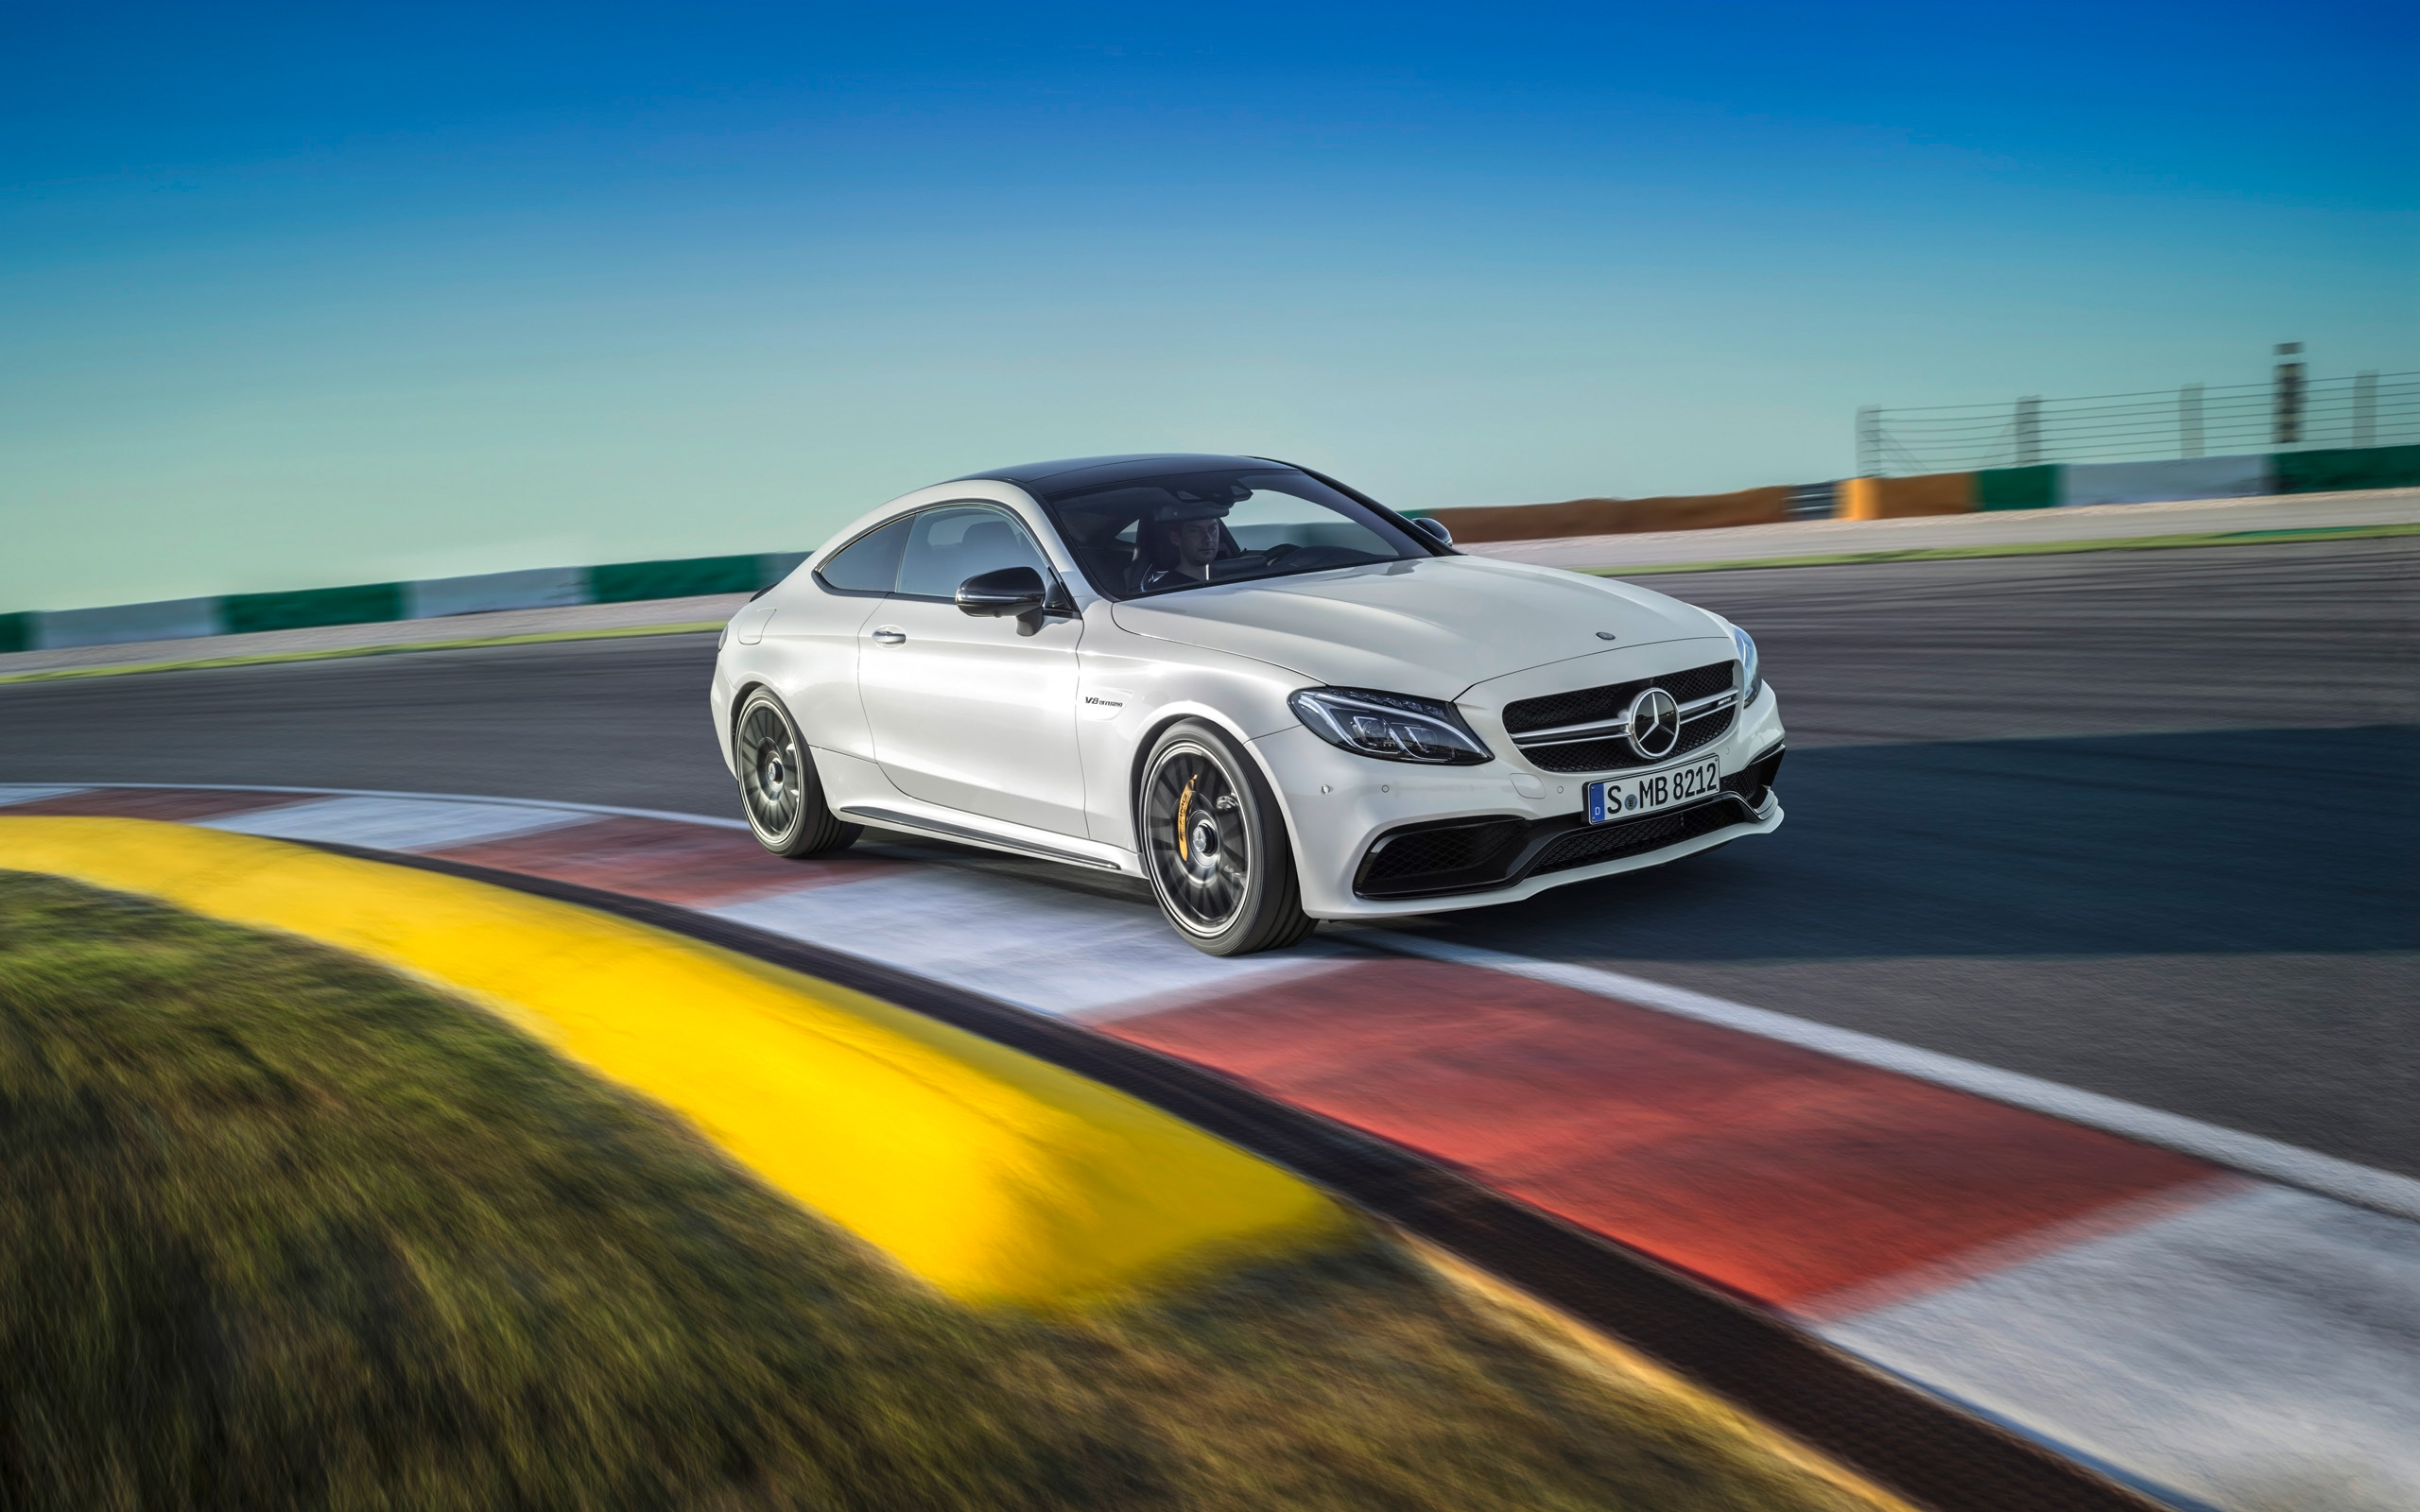 2016 mercedes amg c63 s coupe wallpaper hd car for Mercedes benz c63 amg sedan